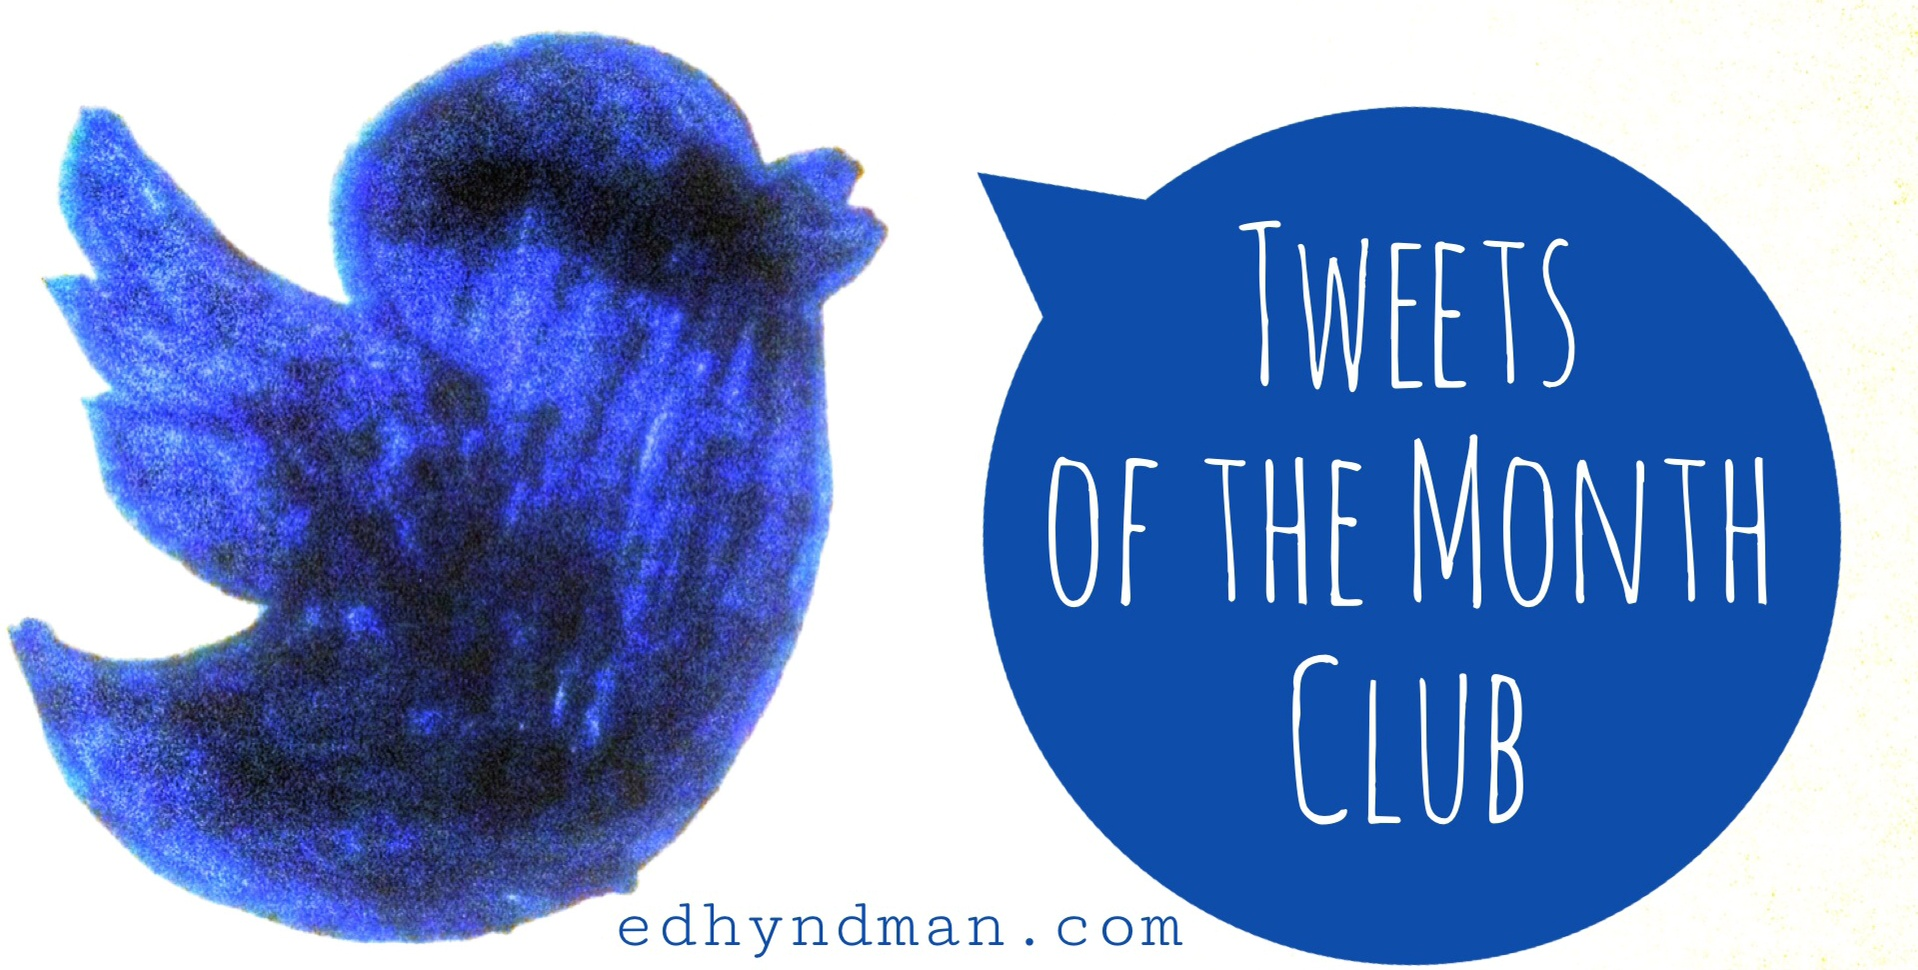 Tweets of the Month Club | October 2016